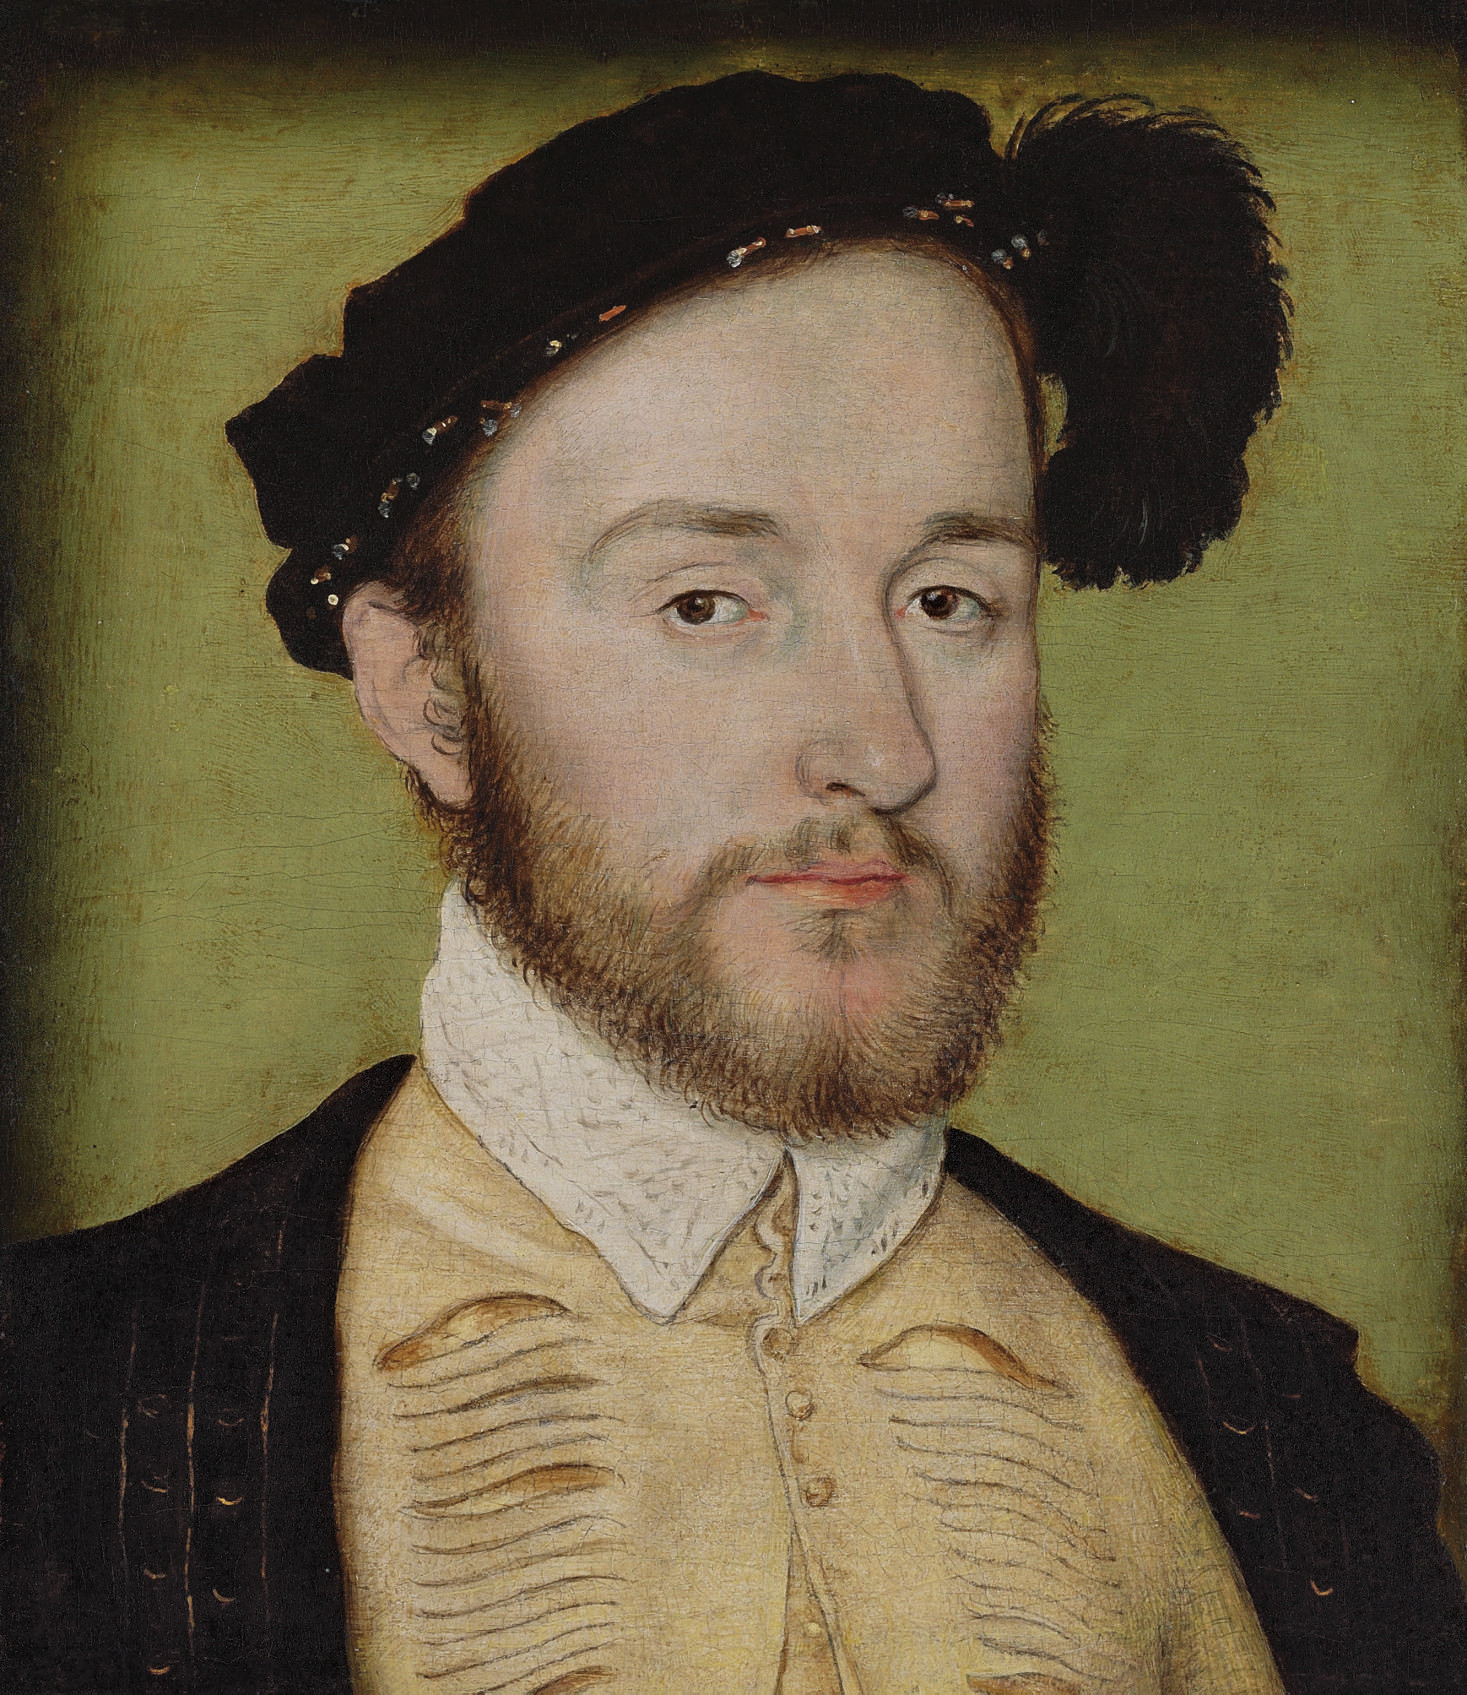 Portrait of Charles de la Rochefoucauld (1525-1562), seigneur de Randan, bust-length, in a slashed doublet, black coat and feathered cap